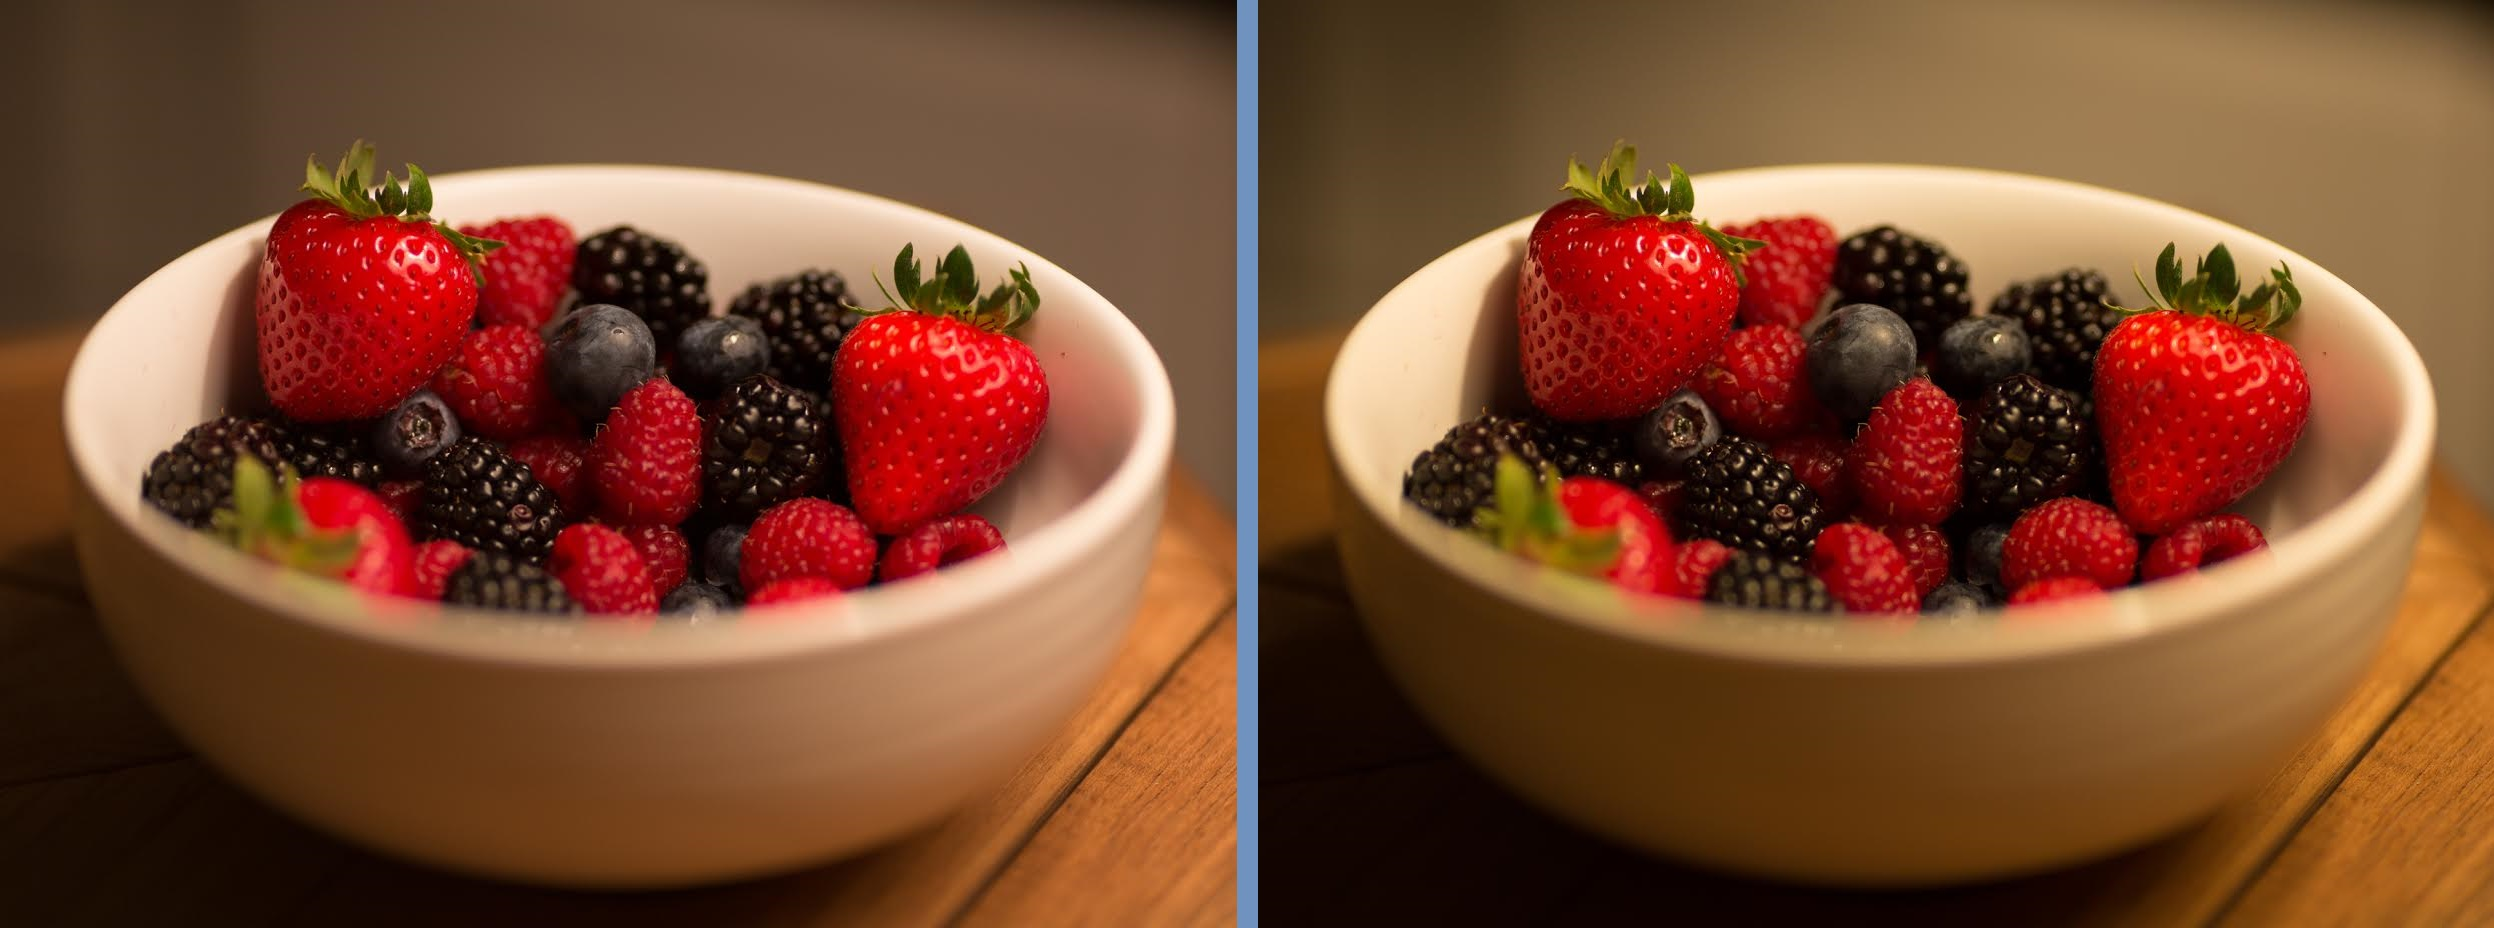 ge-and-cree-berry-comparison.jpg